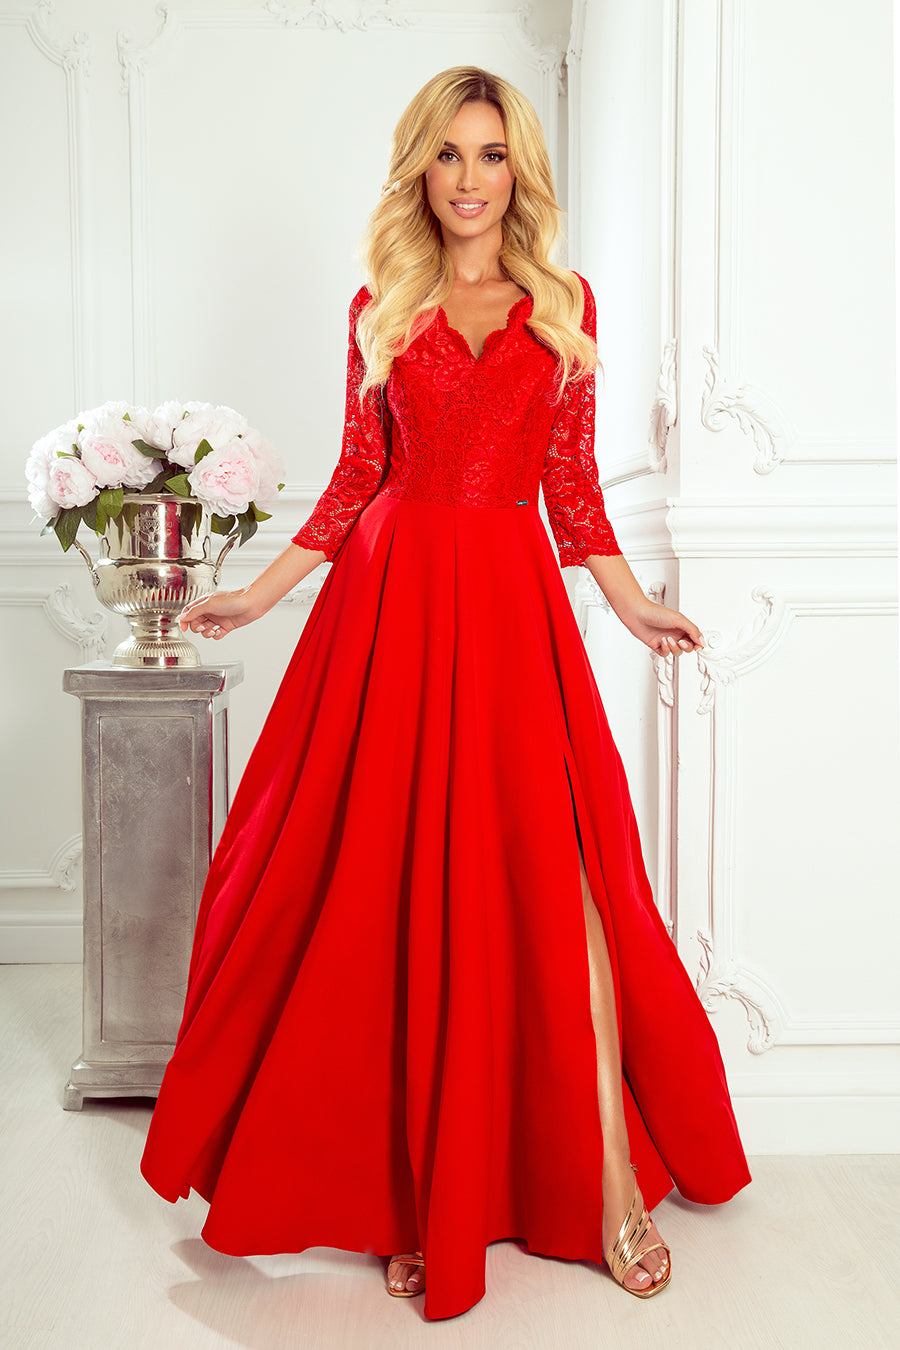 Numoco 309-3 AMBER elegant lace long dress with a neckline - red color